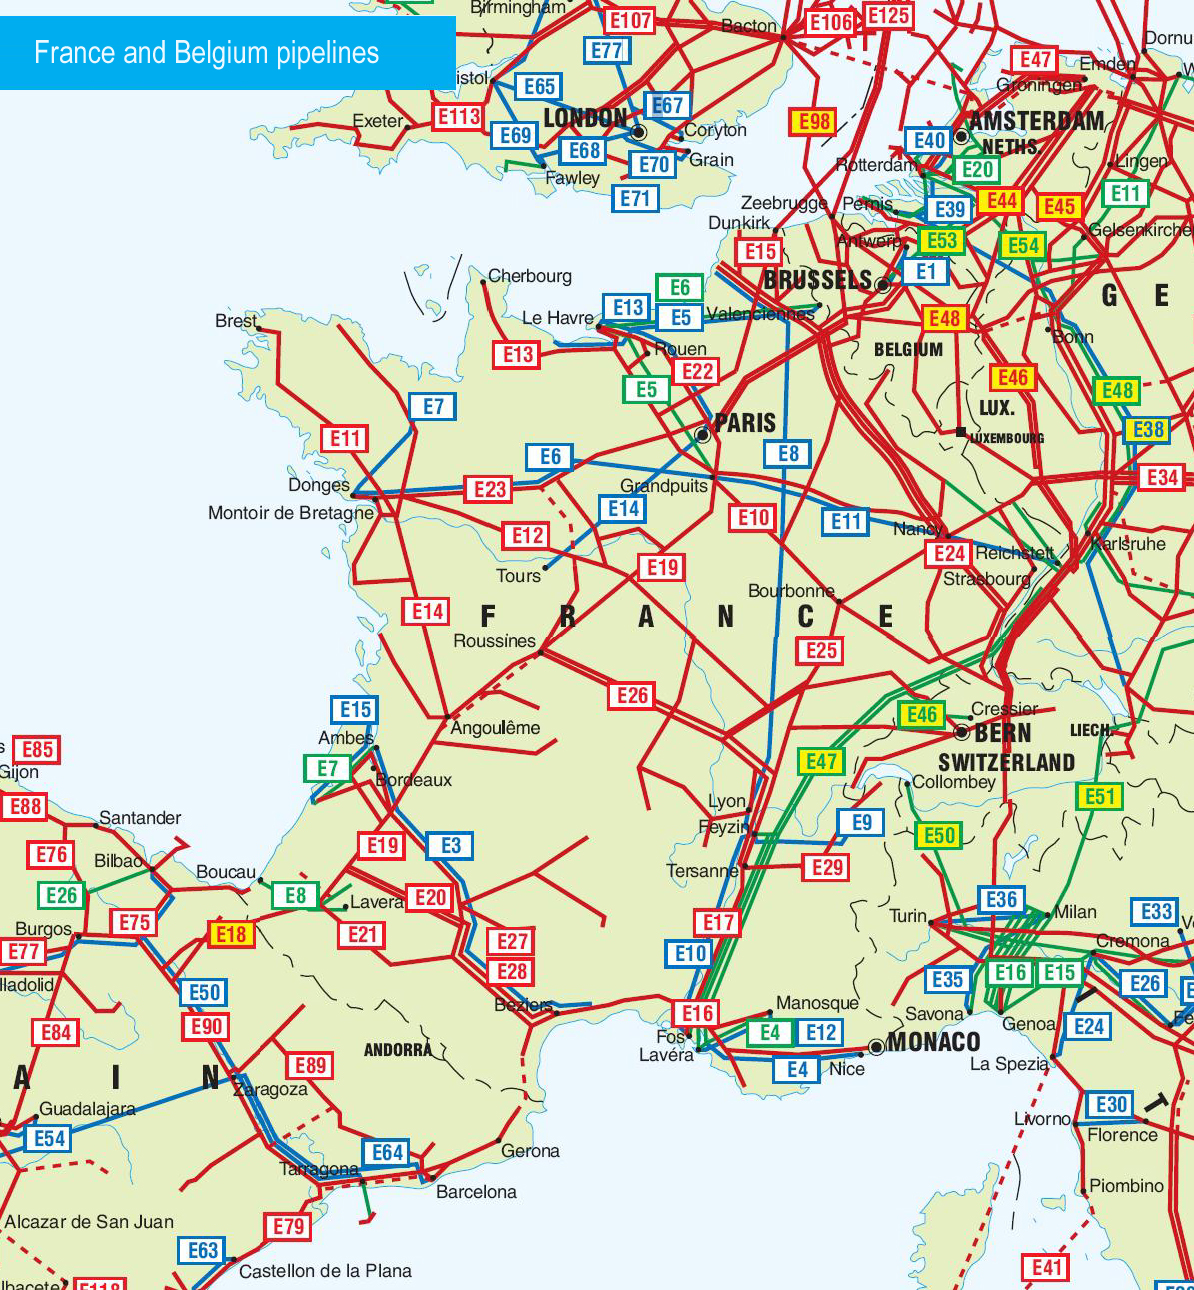 France and Belgium Pipelines map Crude Oil petroleum pipelines – Map of France and Belgium